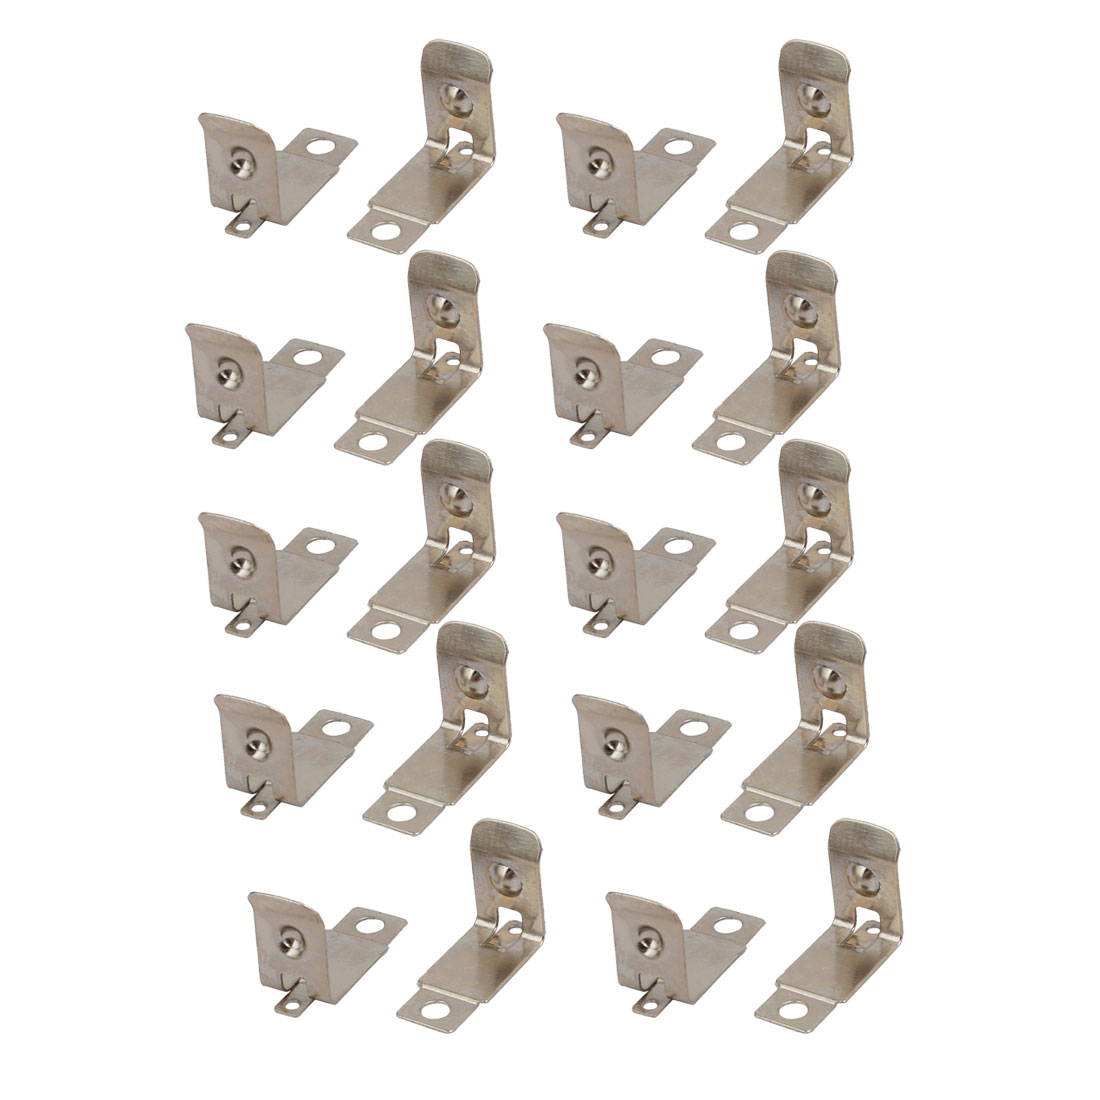 20Pcs Silver Tone ATM Mounted AAA/N/12V Battery Positive Negative Contact Plate